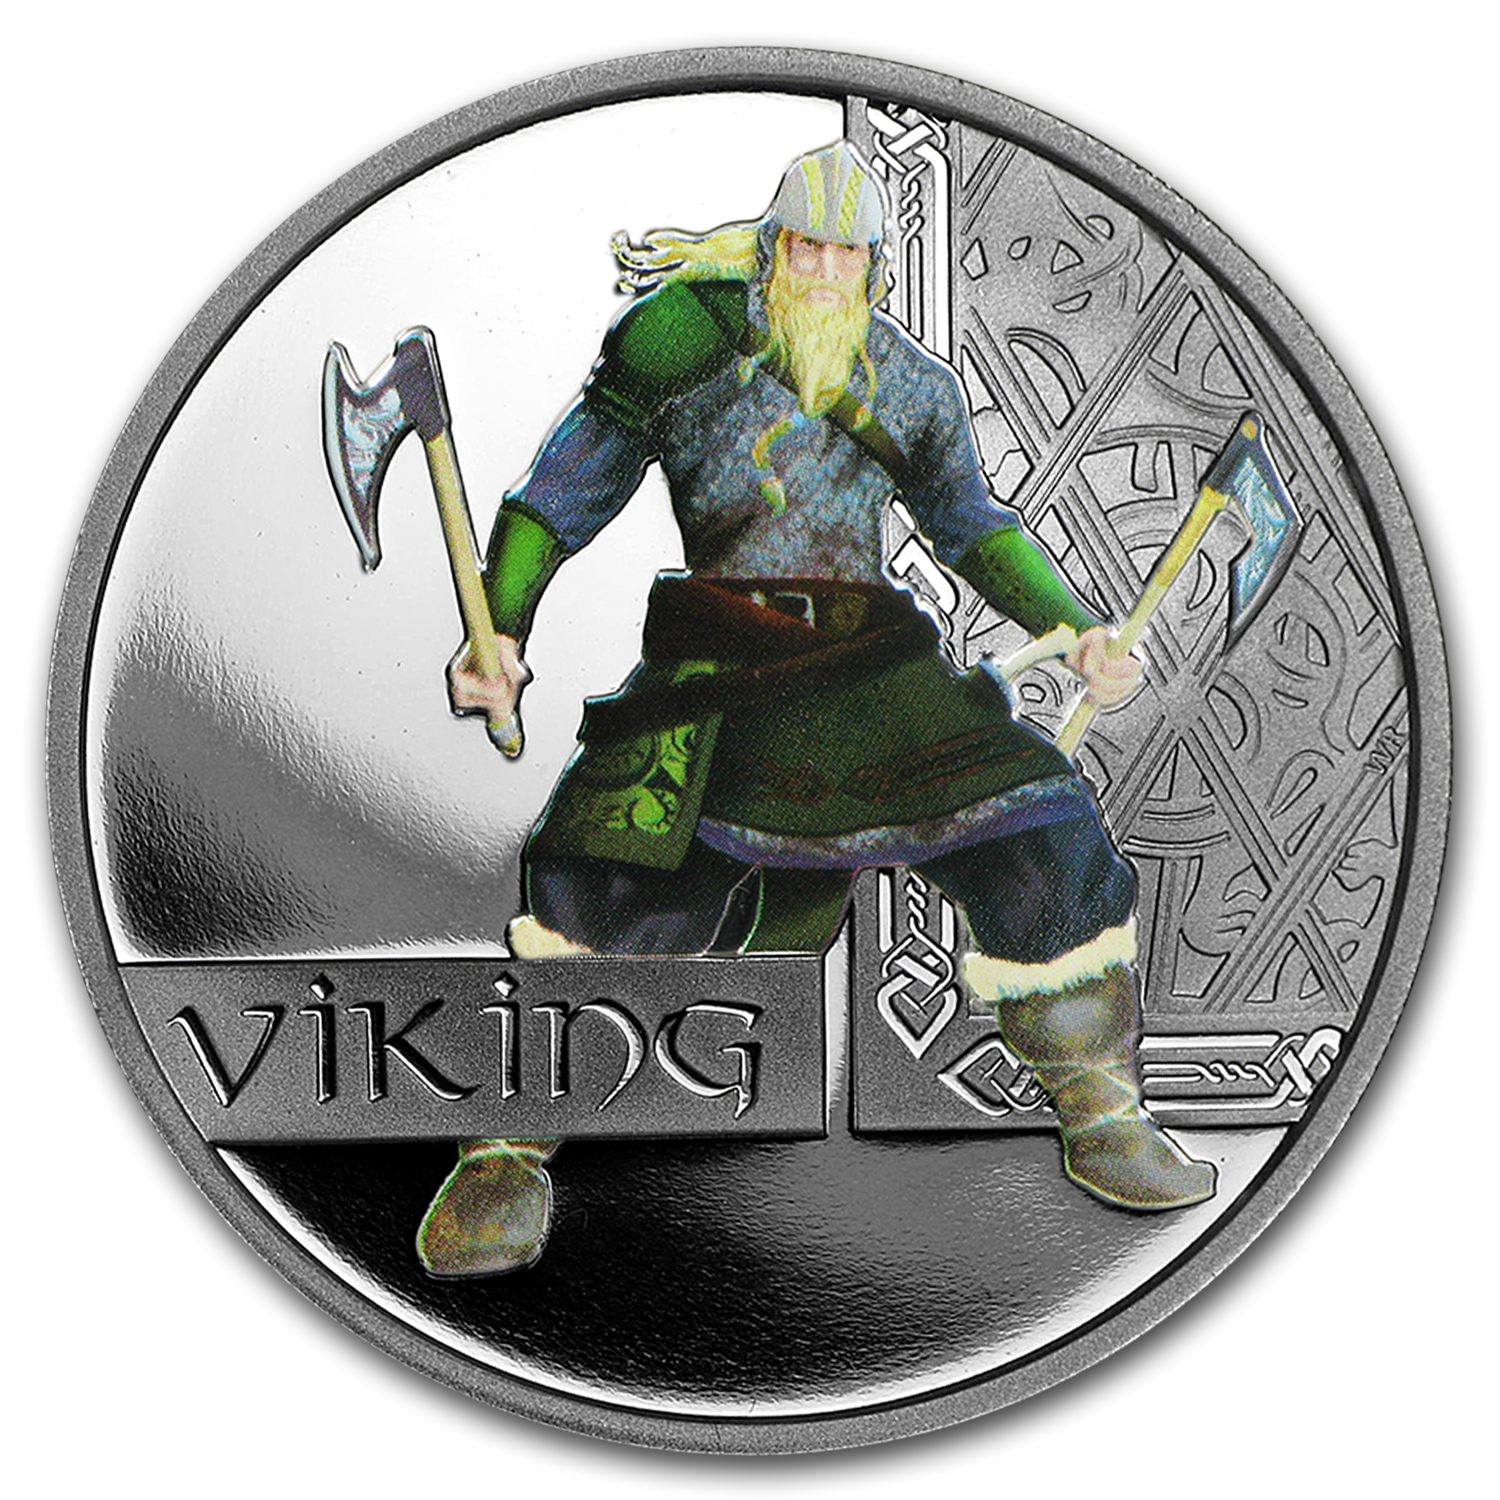 2010 1 oz Proof Silver Great Warriors Series (Viking)